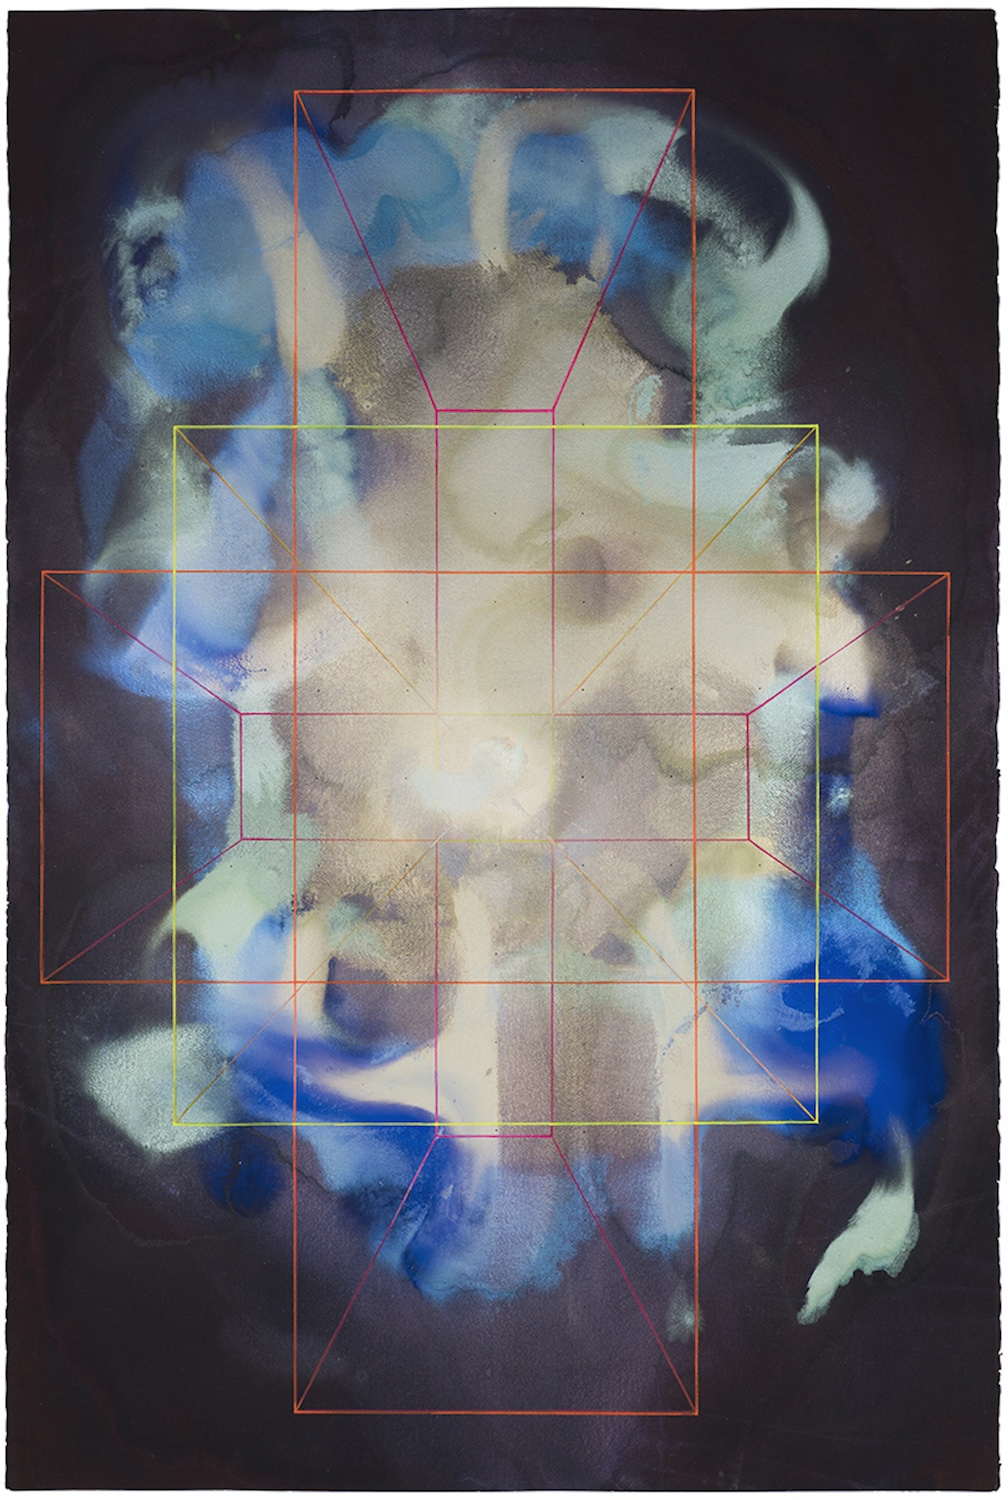 Interactive pigments, Inks, pigments, fluorescent pencil and paint, ventilation holes on 640g cold pressed paper. 151 x 101cm, 2016.